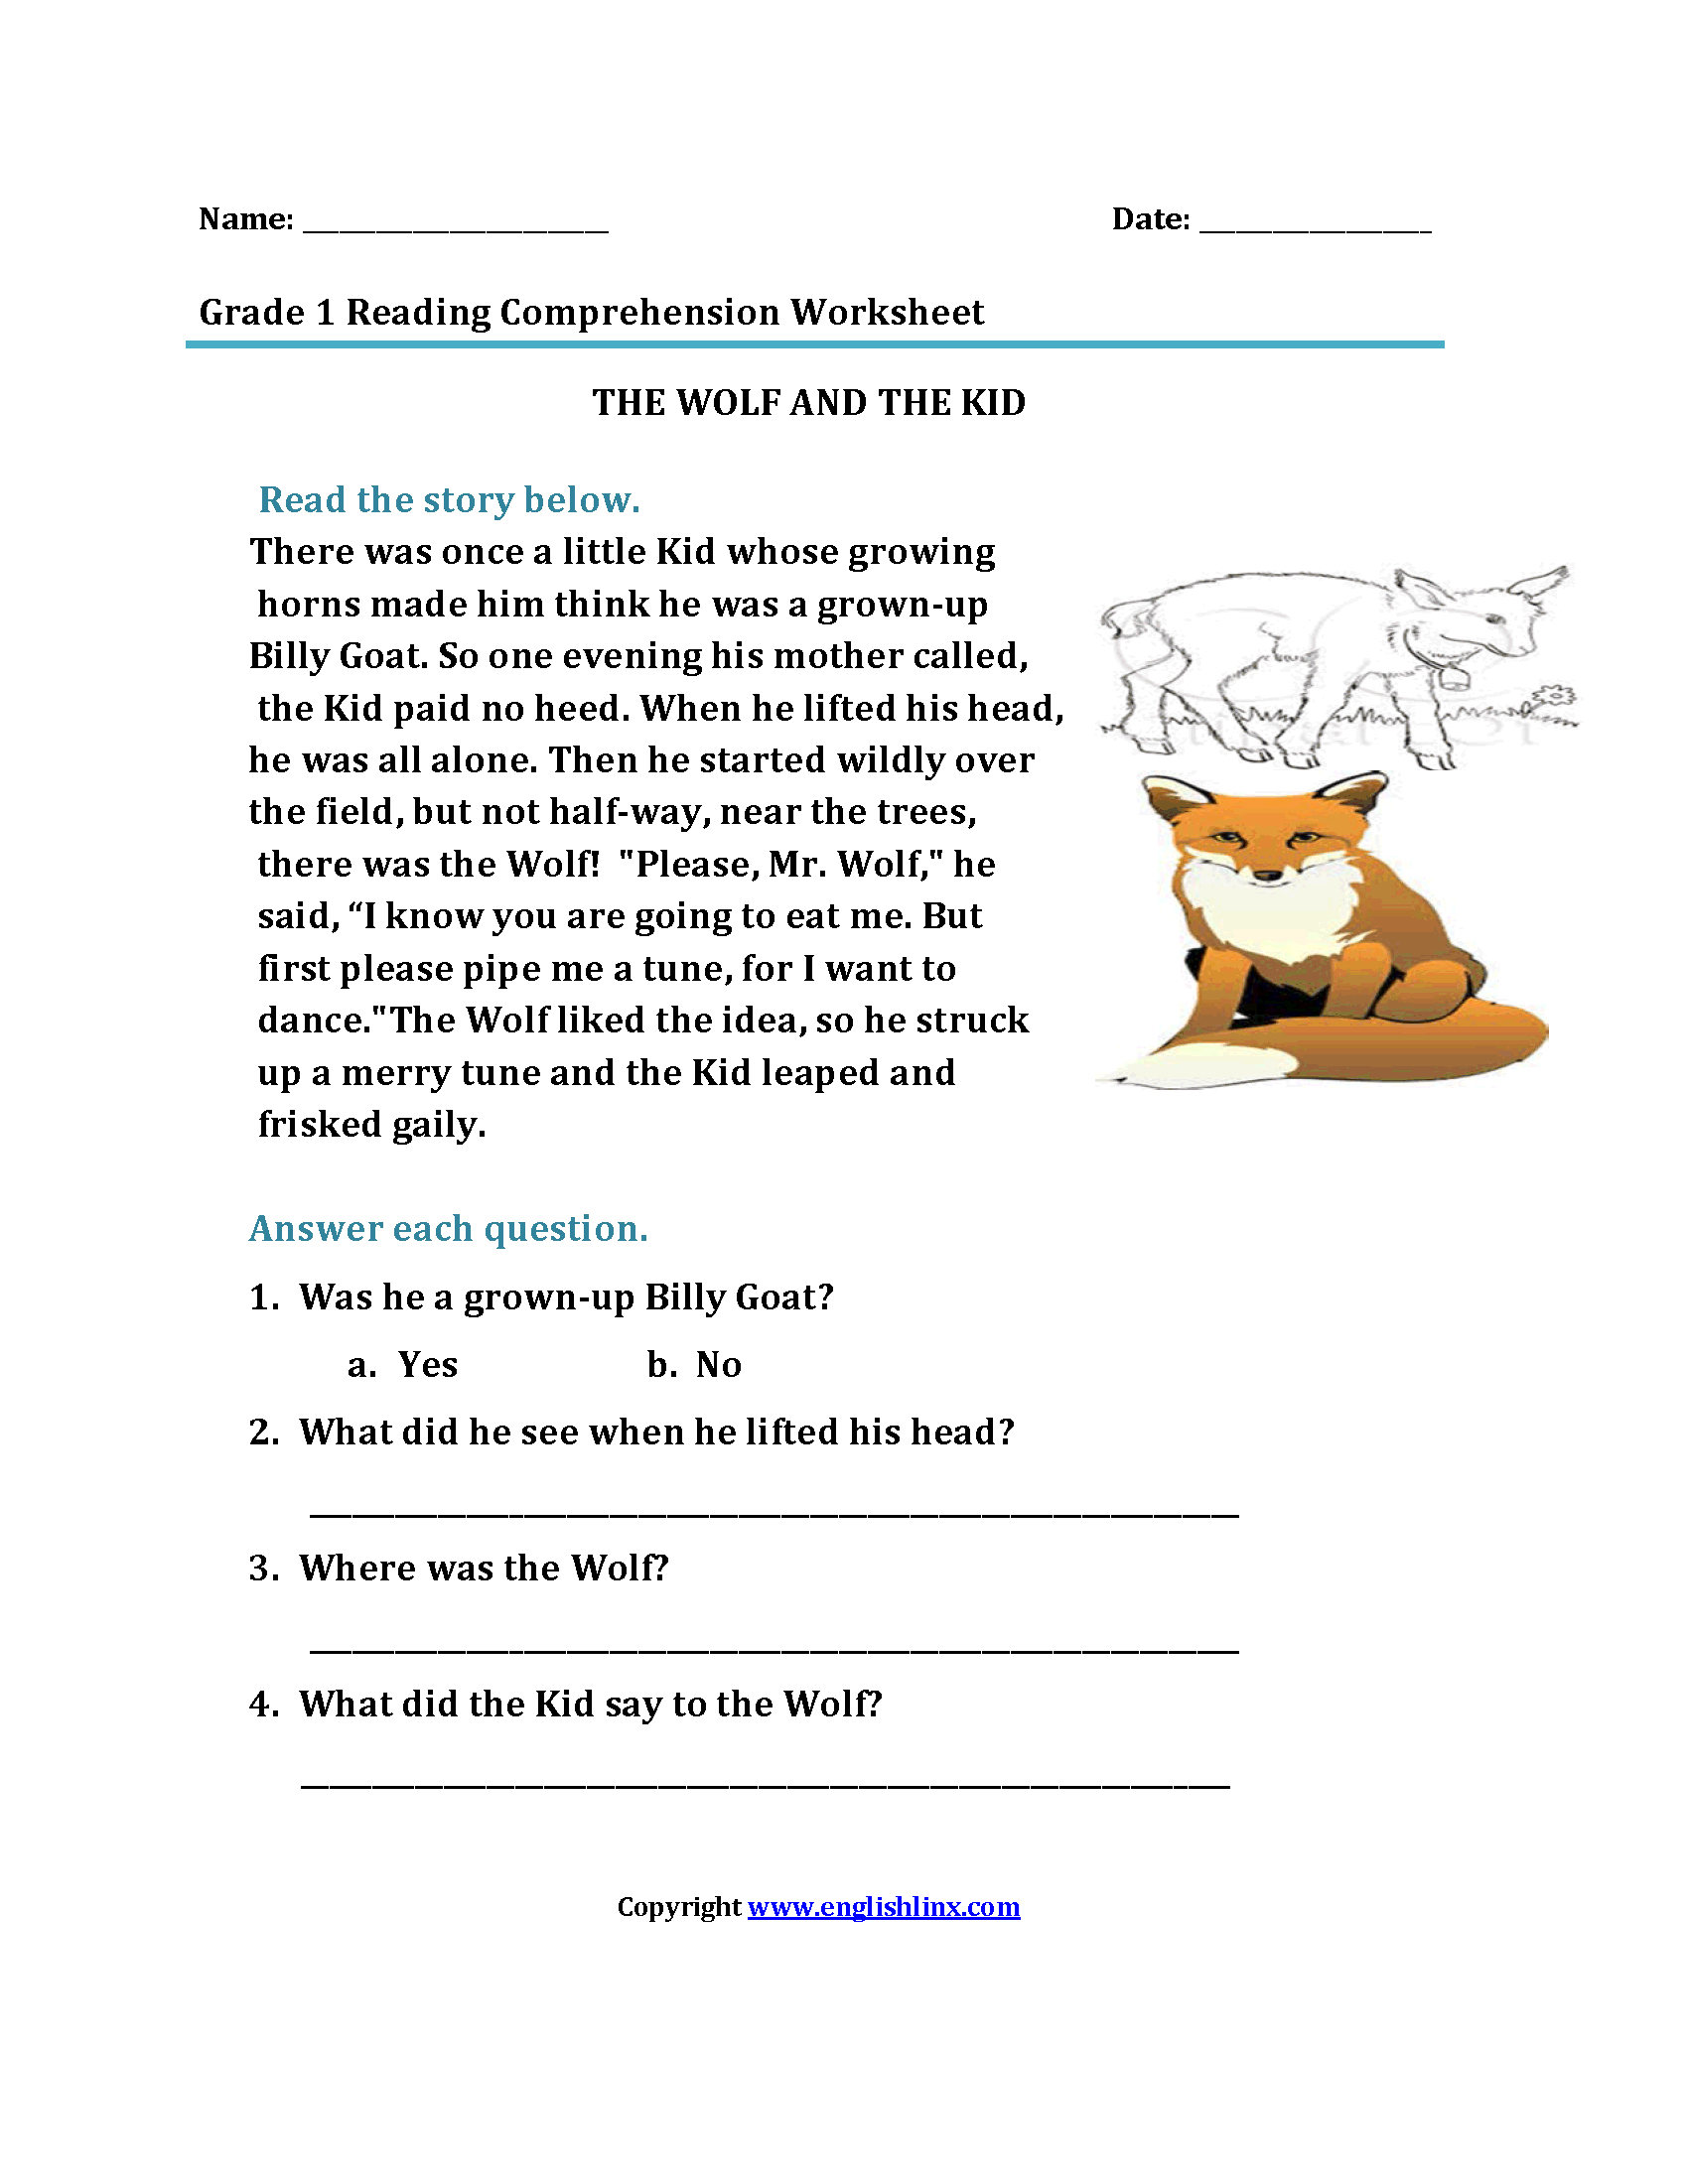 Reading Worksheets | First Grade Reading Worksheets | 1St Grade Reading Comprehension Worksheets Printable